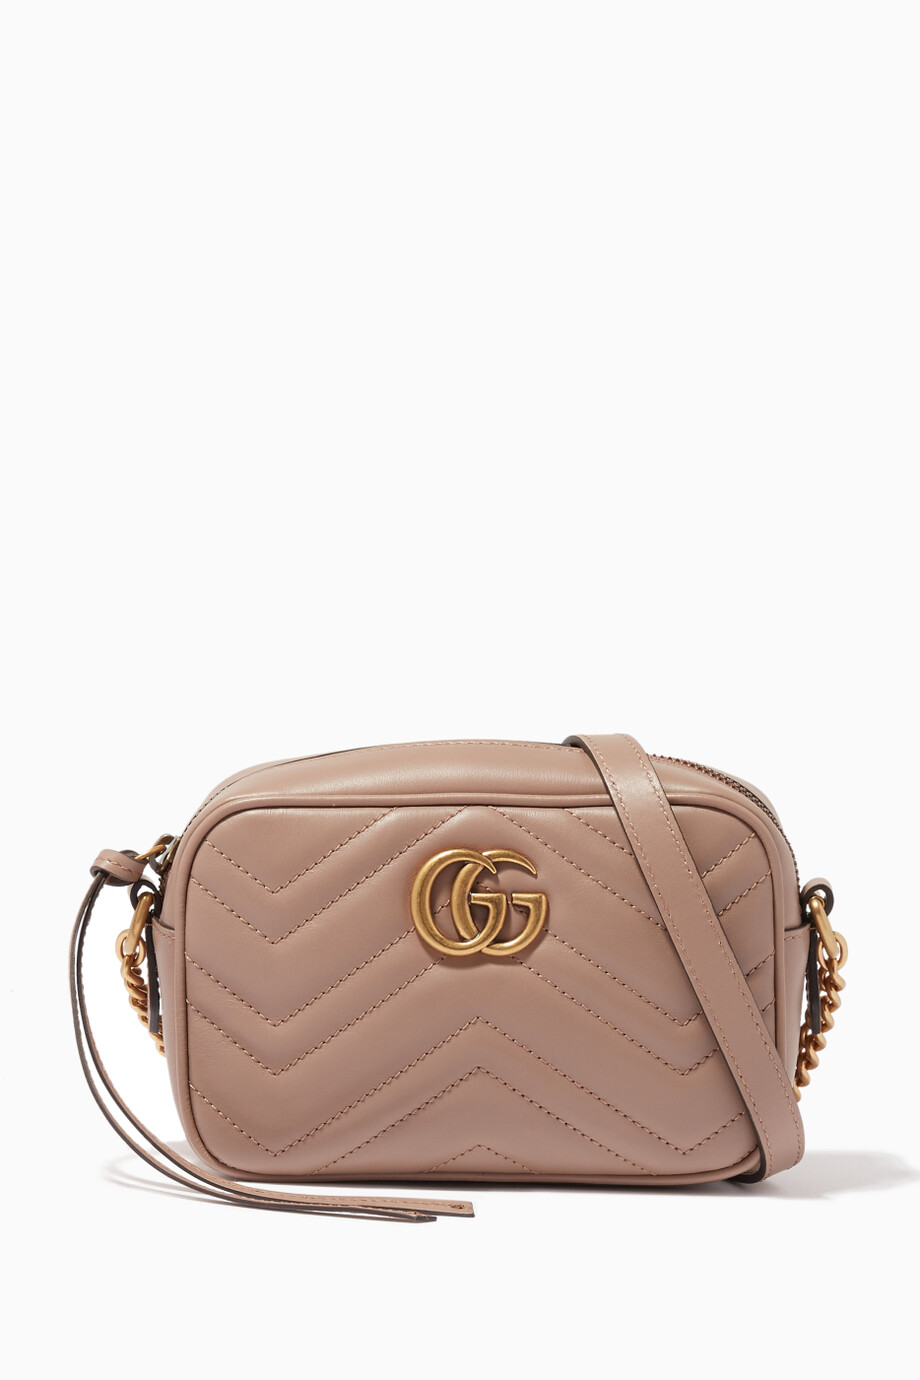 7a6fe47ff2c1 Shop Gucci Neutral Beige Mini GG Marmont Camera Cross-Body Bag for ...